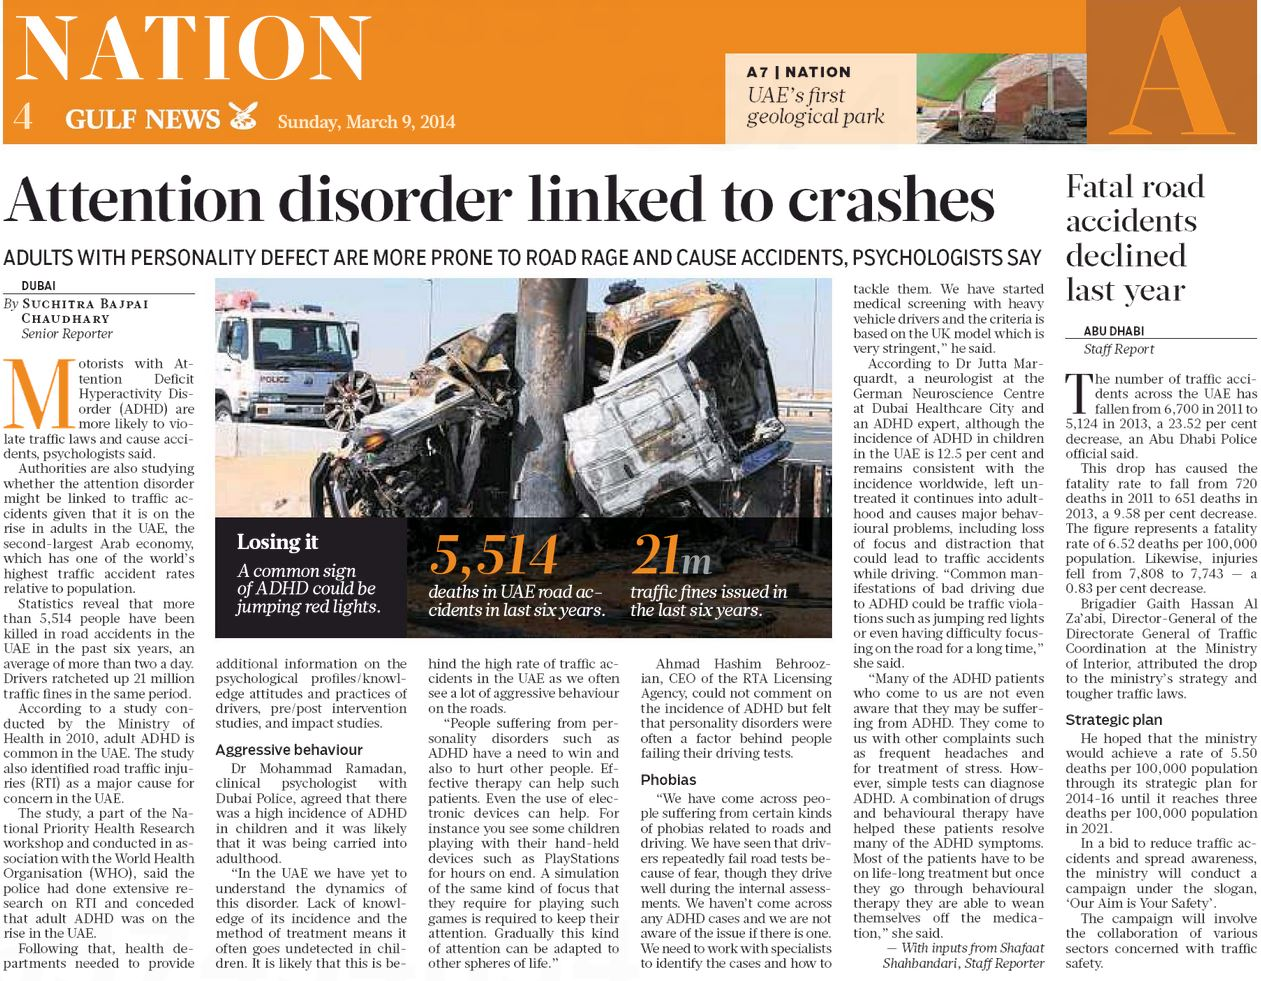 gulf news adhd blamed for bad driving in the uae german